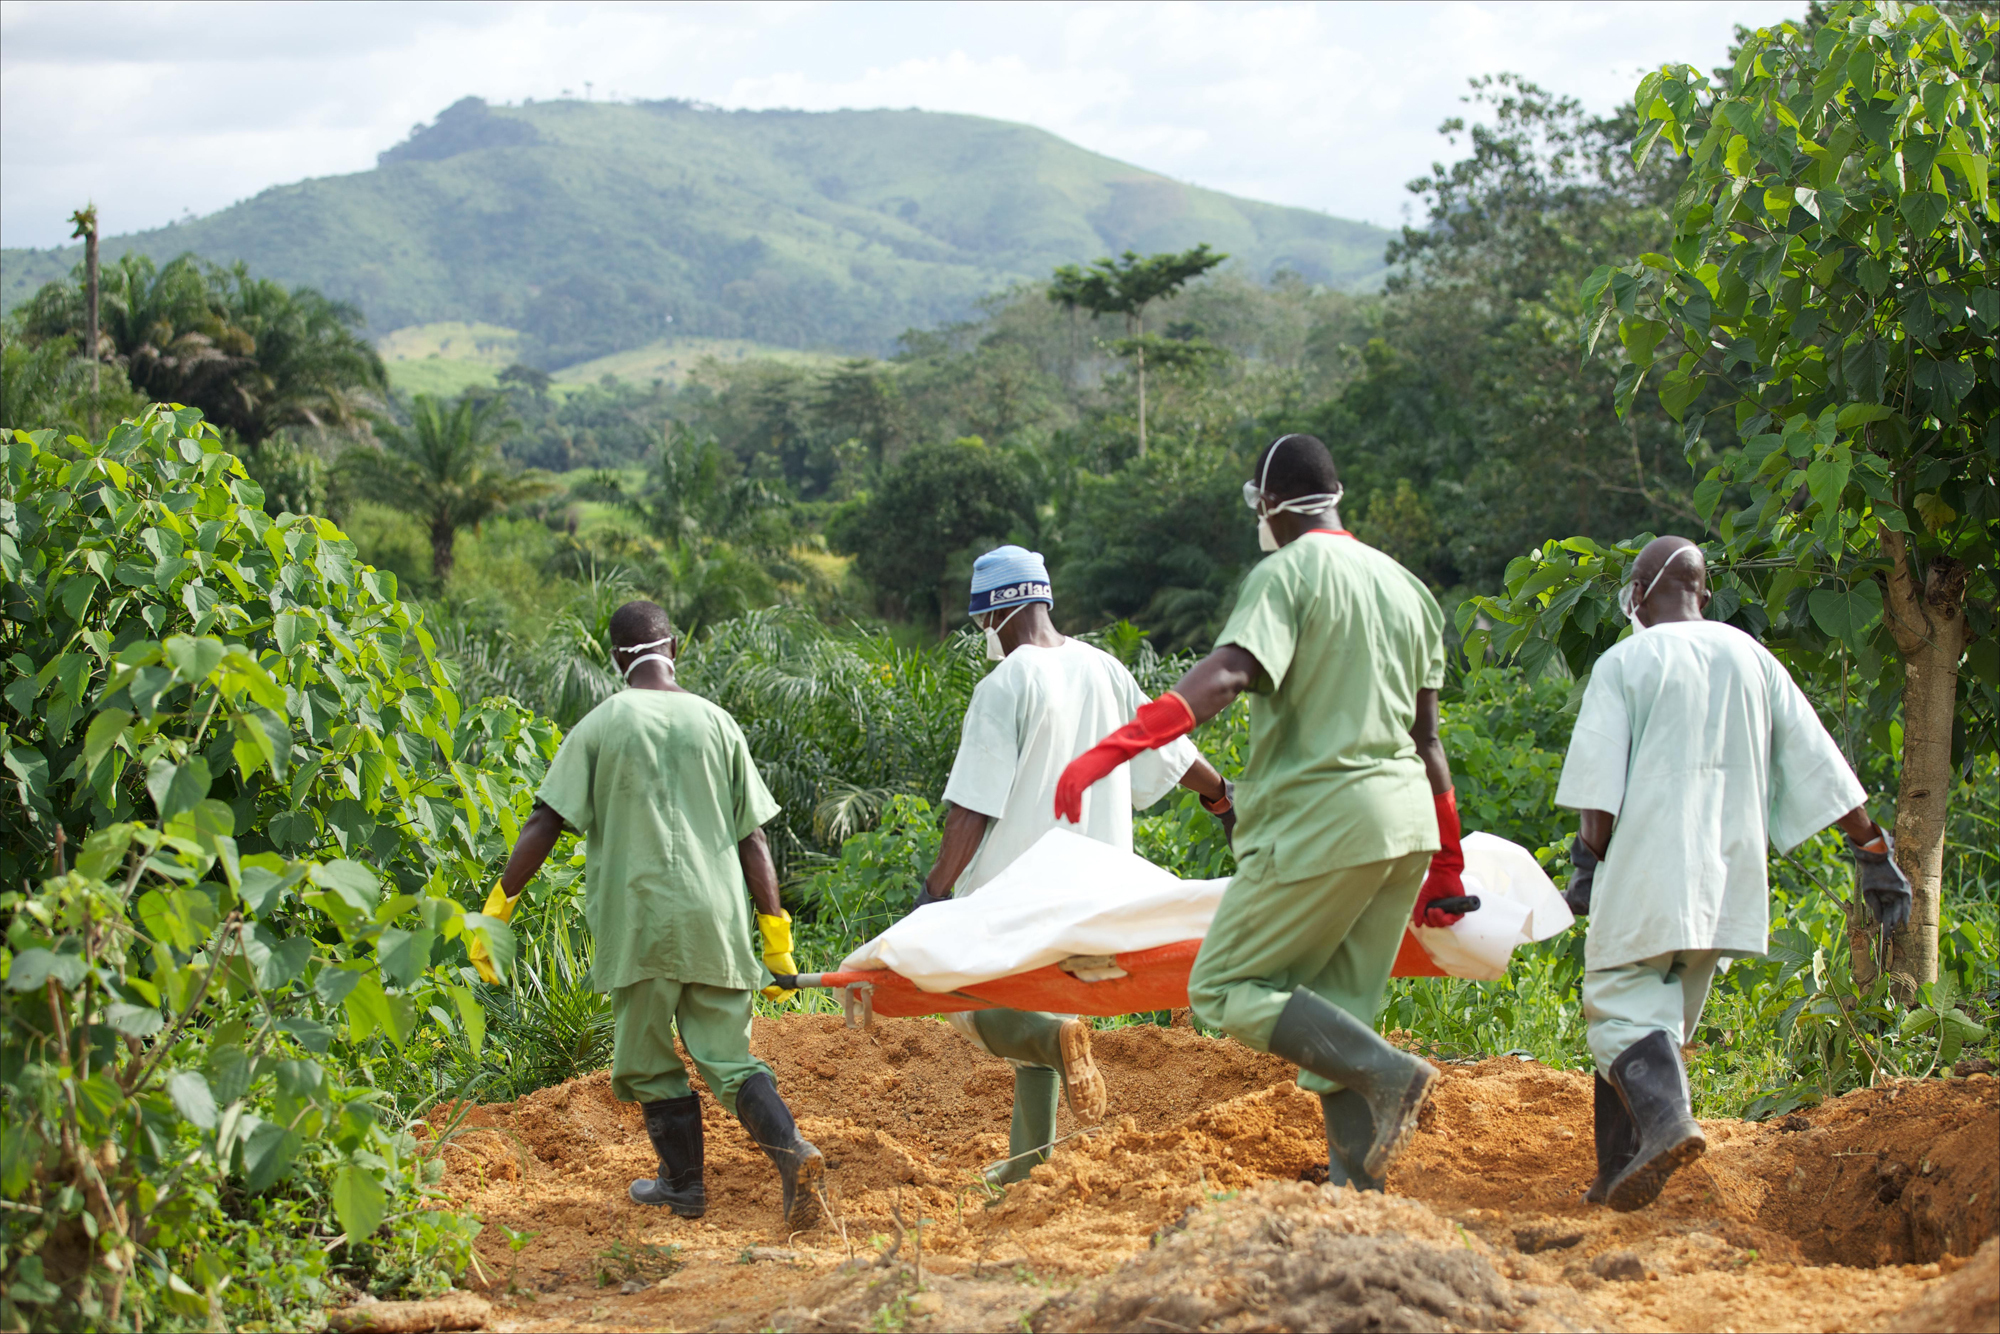 Guinea Is Seeing More Ebola Cases: Can The Trend Be Stopped?